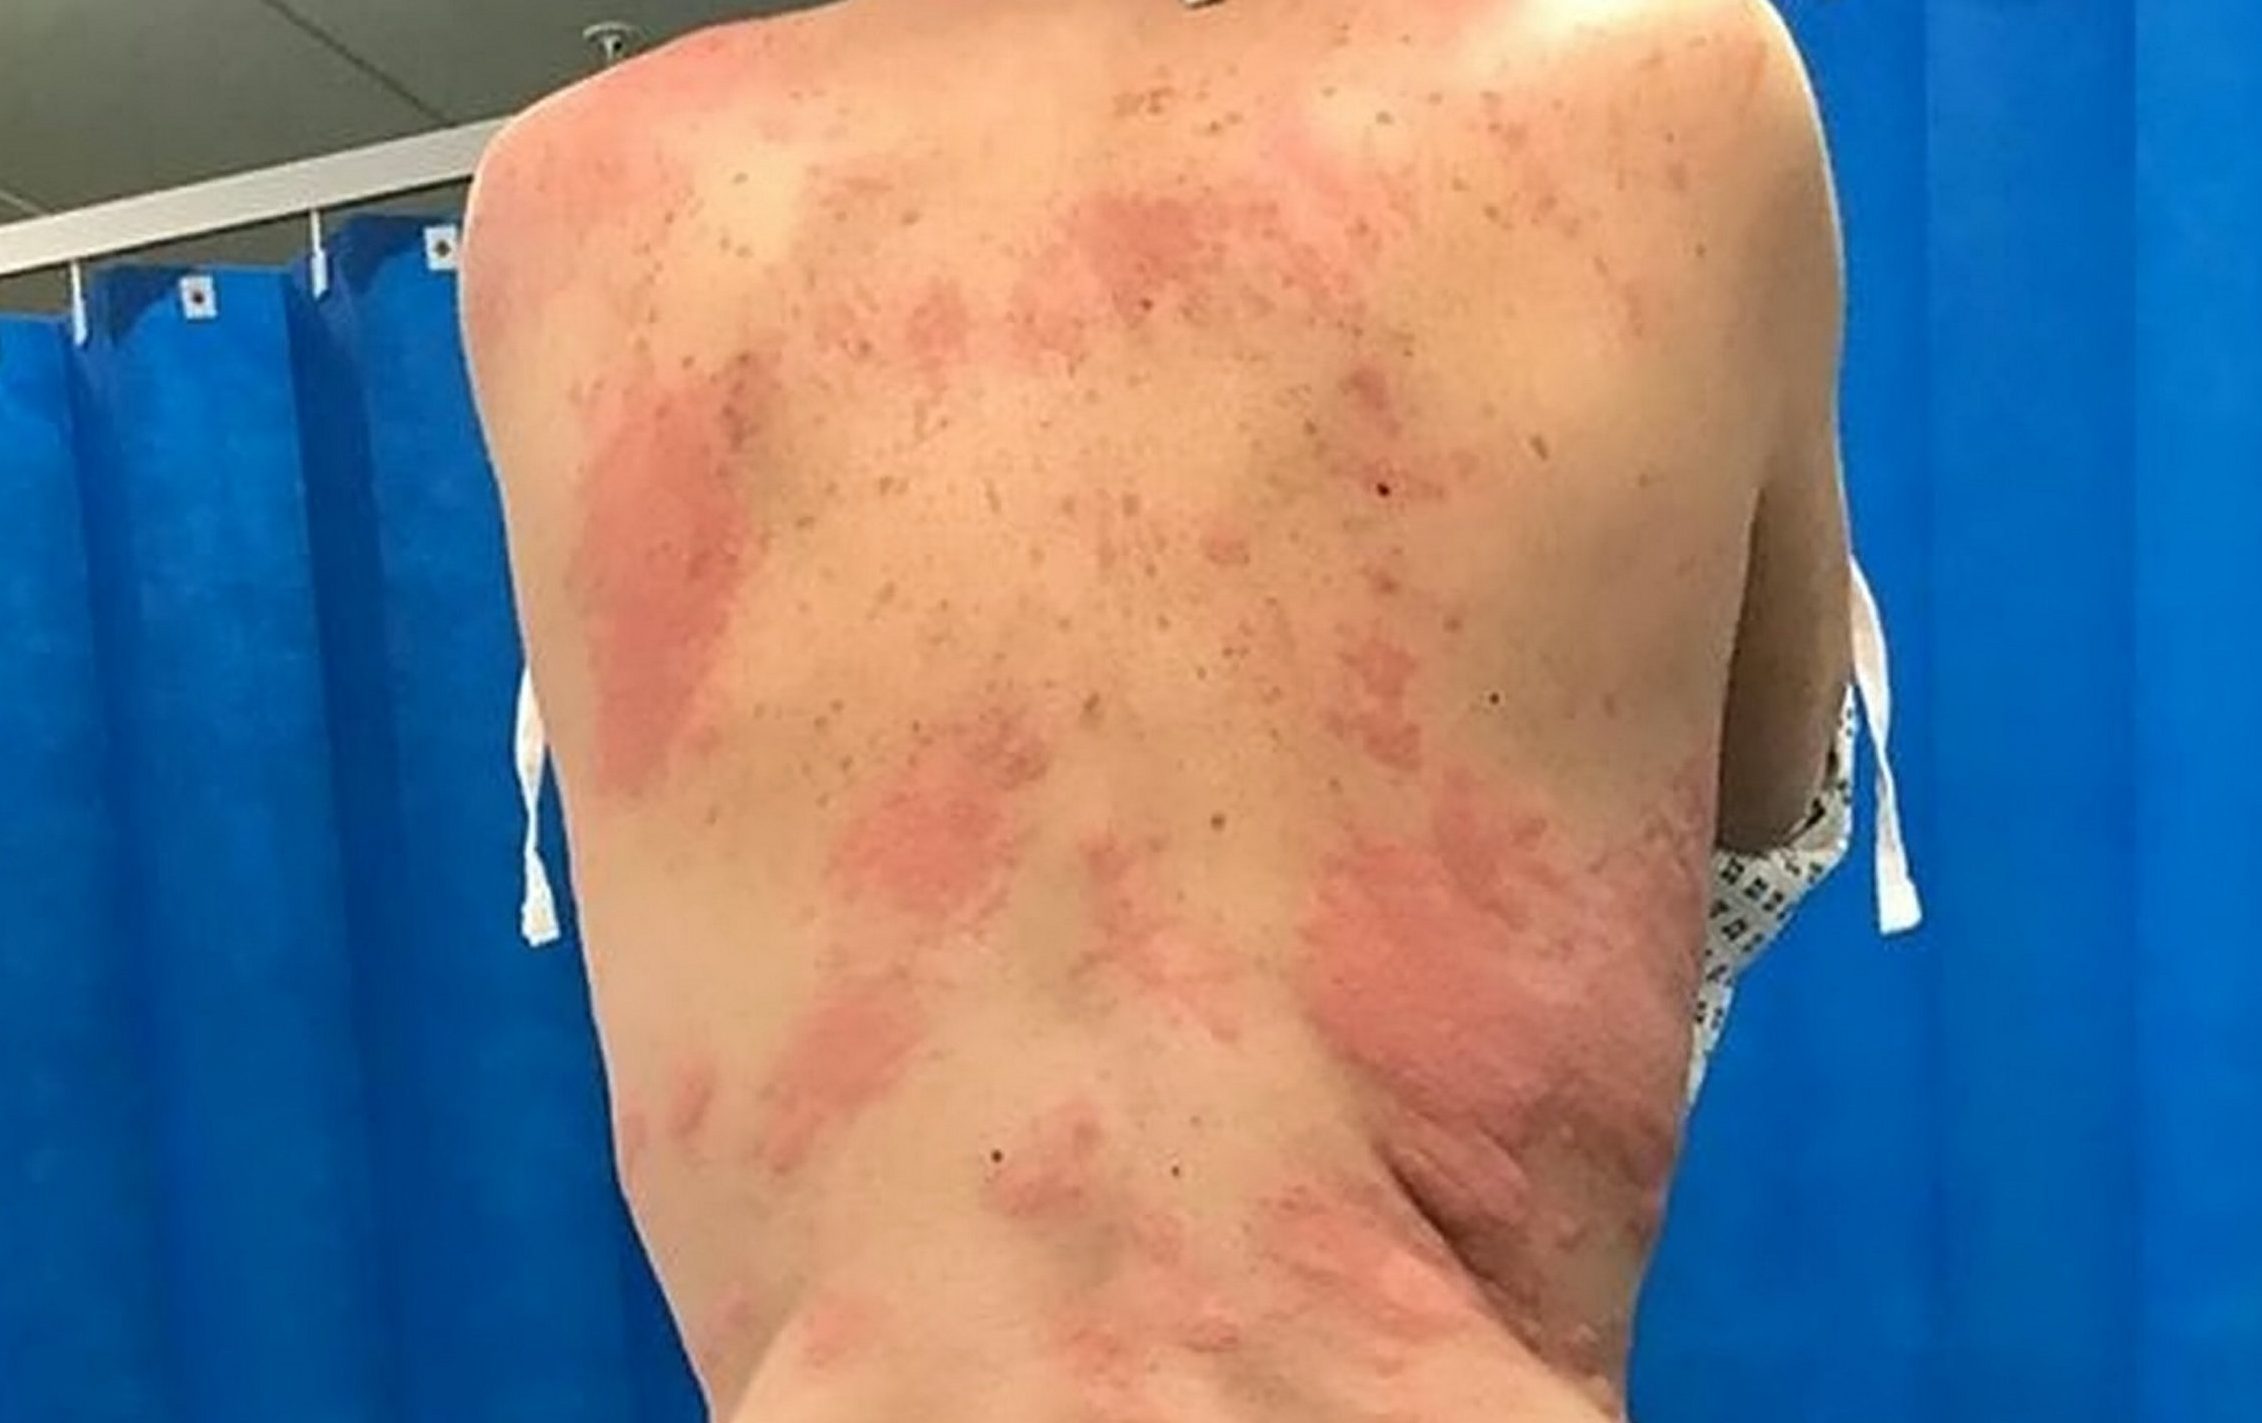 Mum was left with painful burn-like rashes all over her body